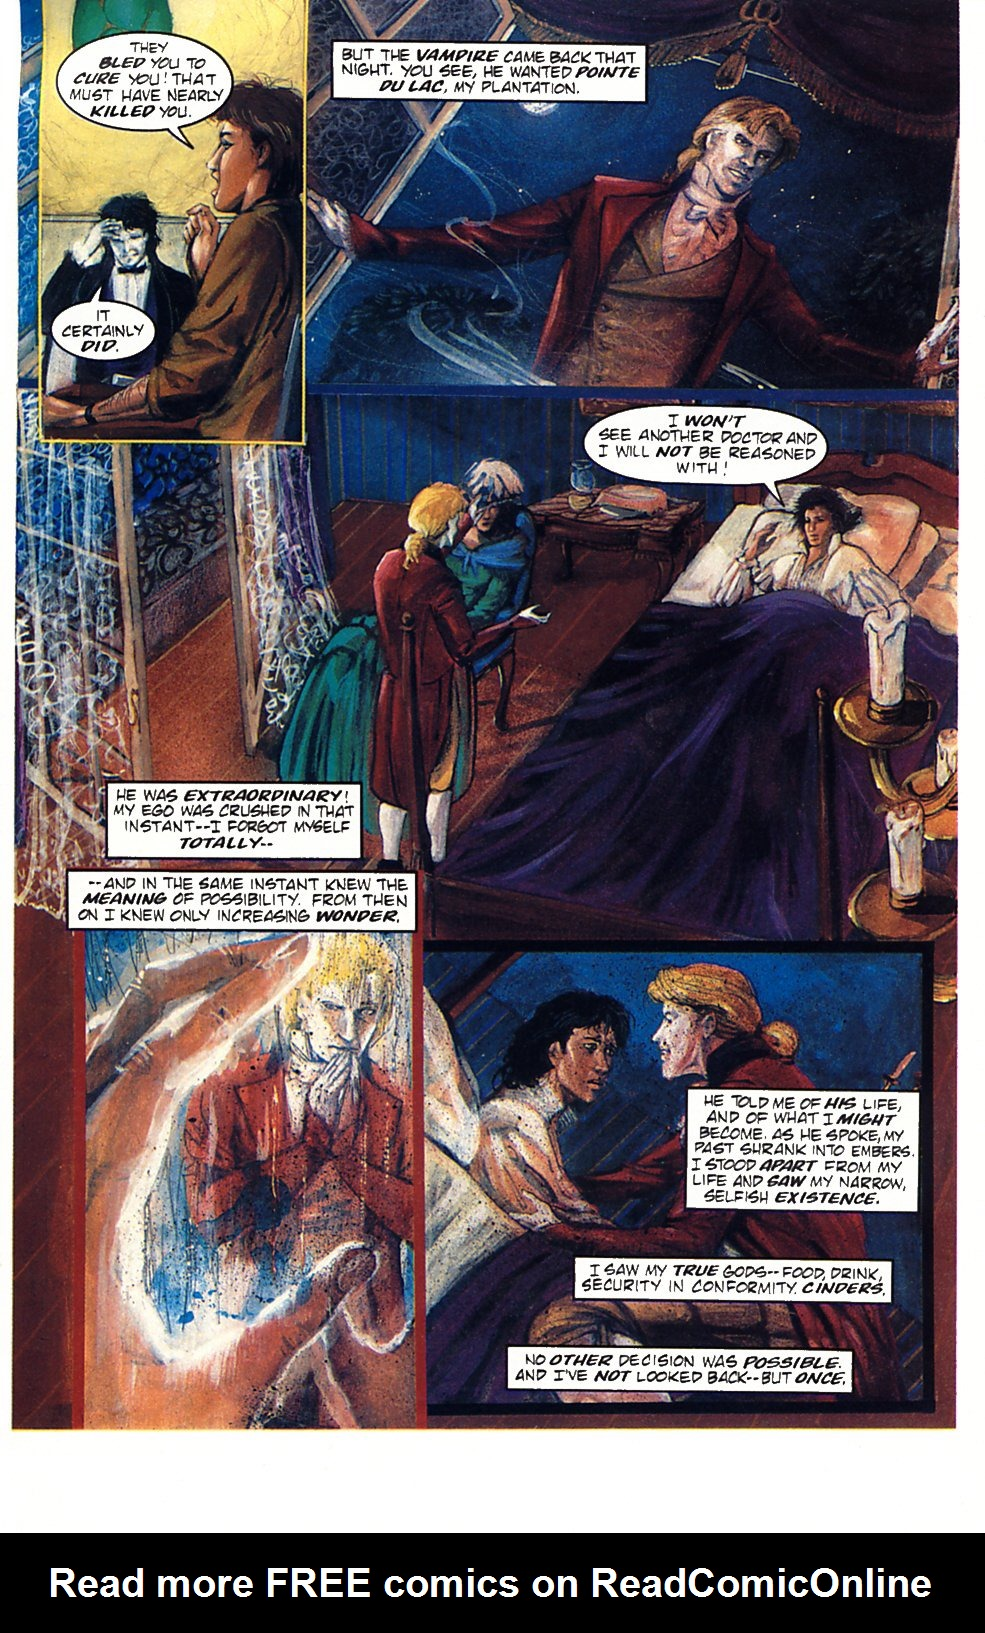 Read online Anne Rice's Interview with the Vampire comic -  Issue #1 - 13